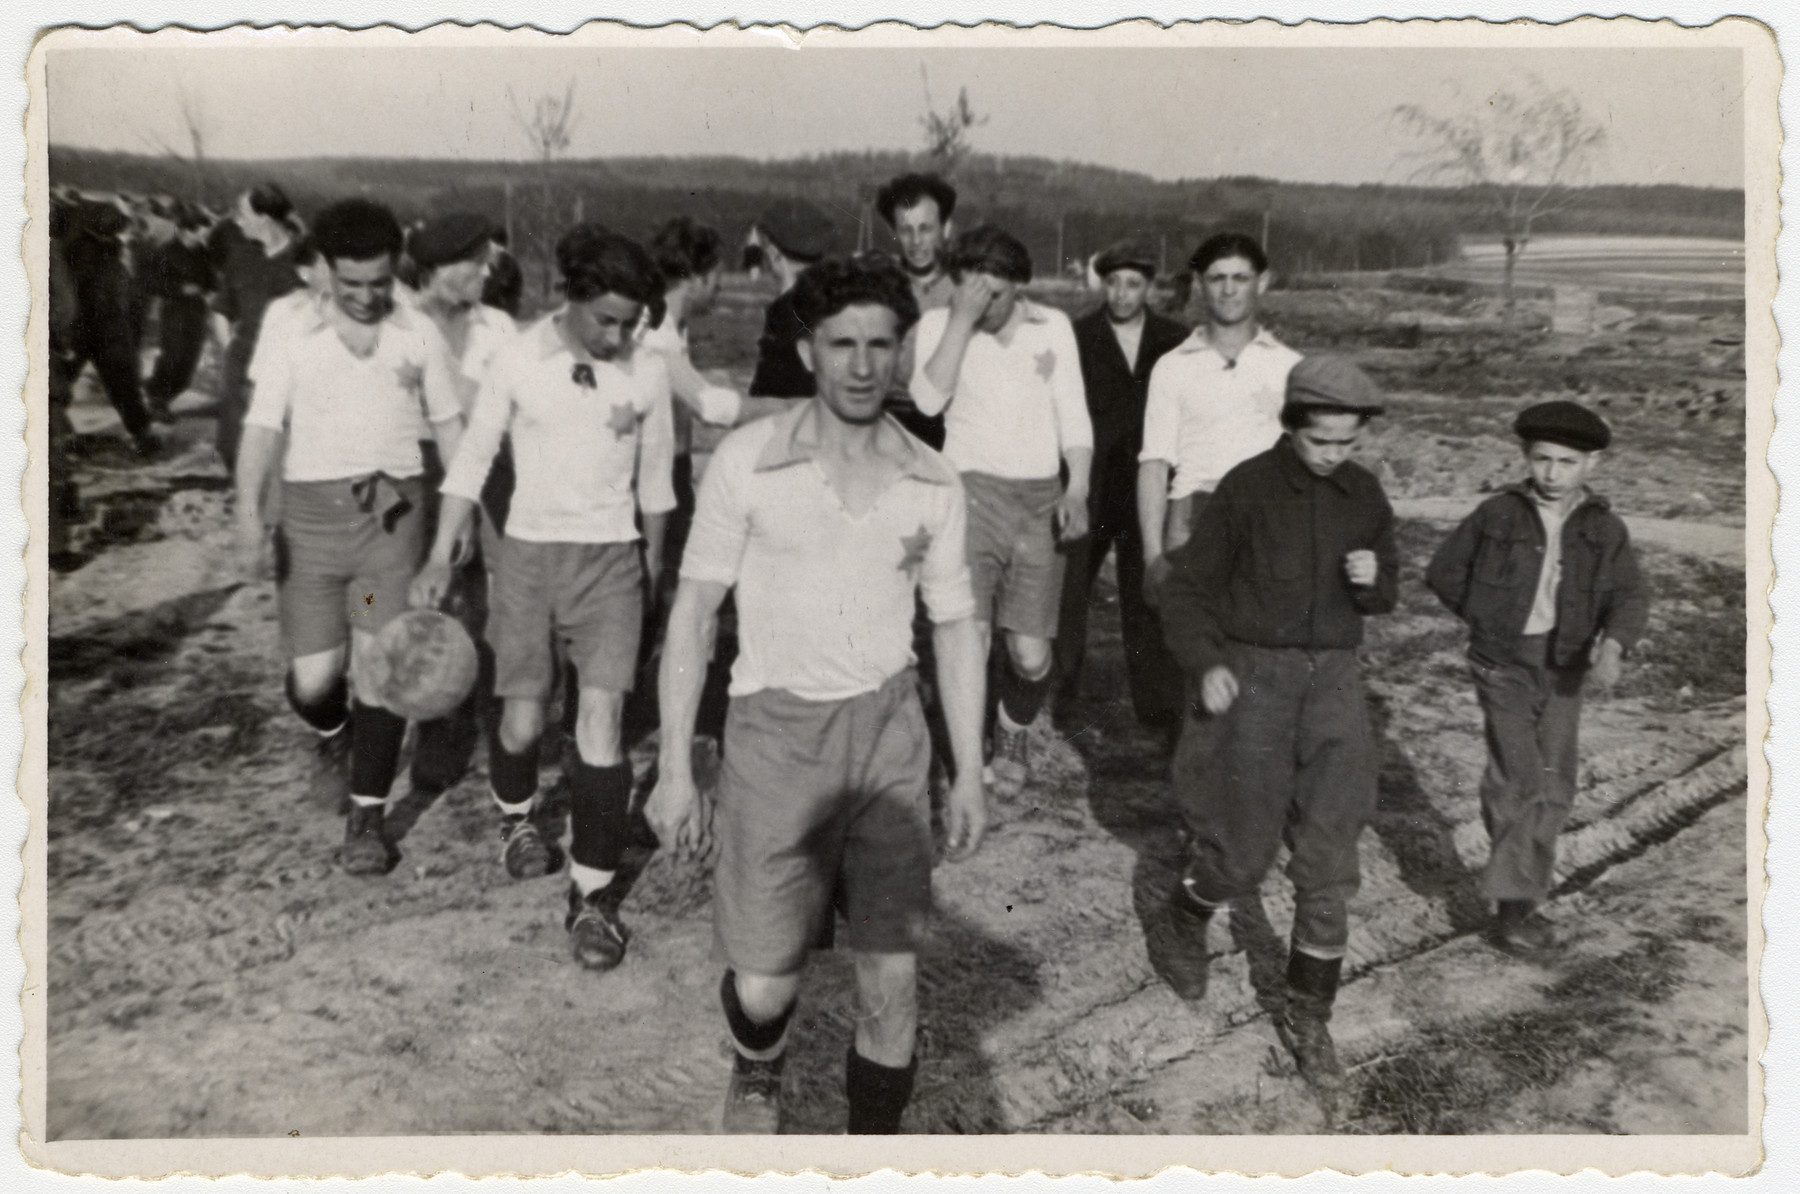 Members of Kassel displaced persons' camp soccer team walk to or from a game; their uniforms have a Star of David reminiscent of German ghetto regulations.